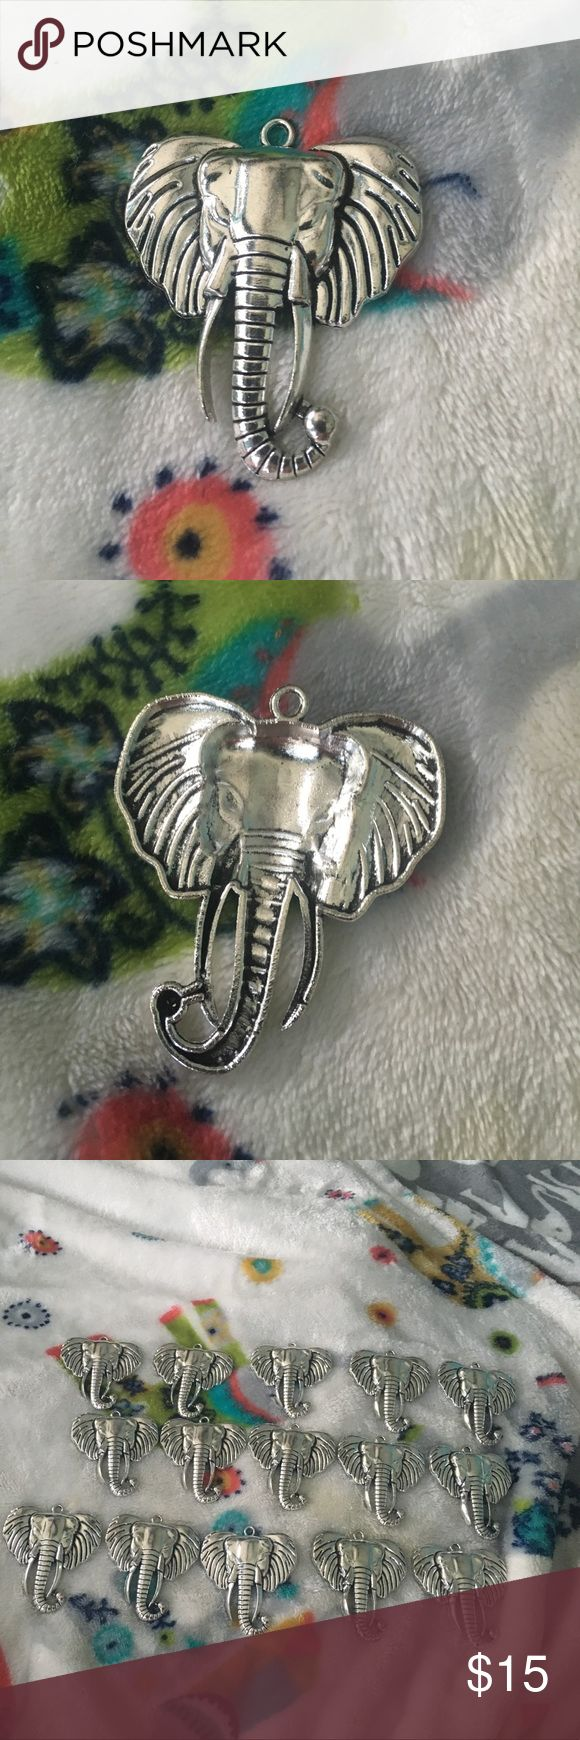 Silver platted elephant pendents These silver elephant pendants can be used to put an elegant touch on anything. You can make a gorgeous necklace with these pendants, add decoration on your key ring, additives on shower curtain hangers, passing out to friends. Free gifts to costumers; the possibilities are endless. LISTING IS THE PRICE OF 15 UNITS. If you wish to buy more or fewer comment below and I will make a separate listing for you. Jewelry Necklaces